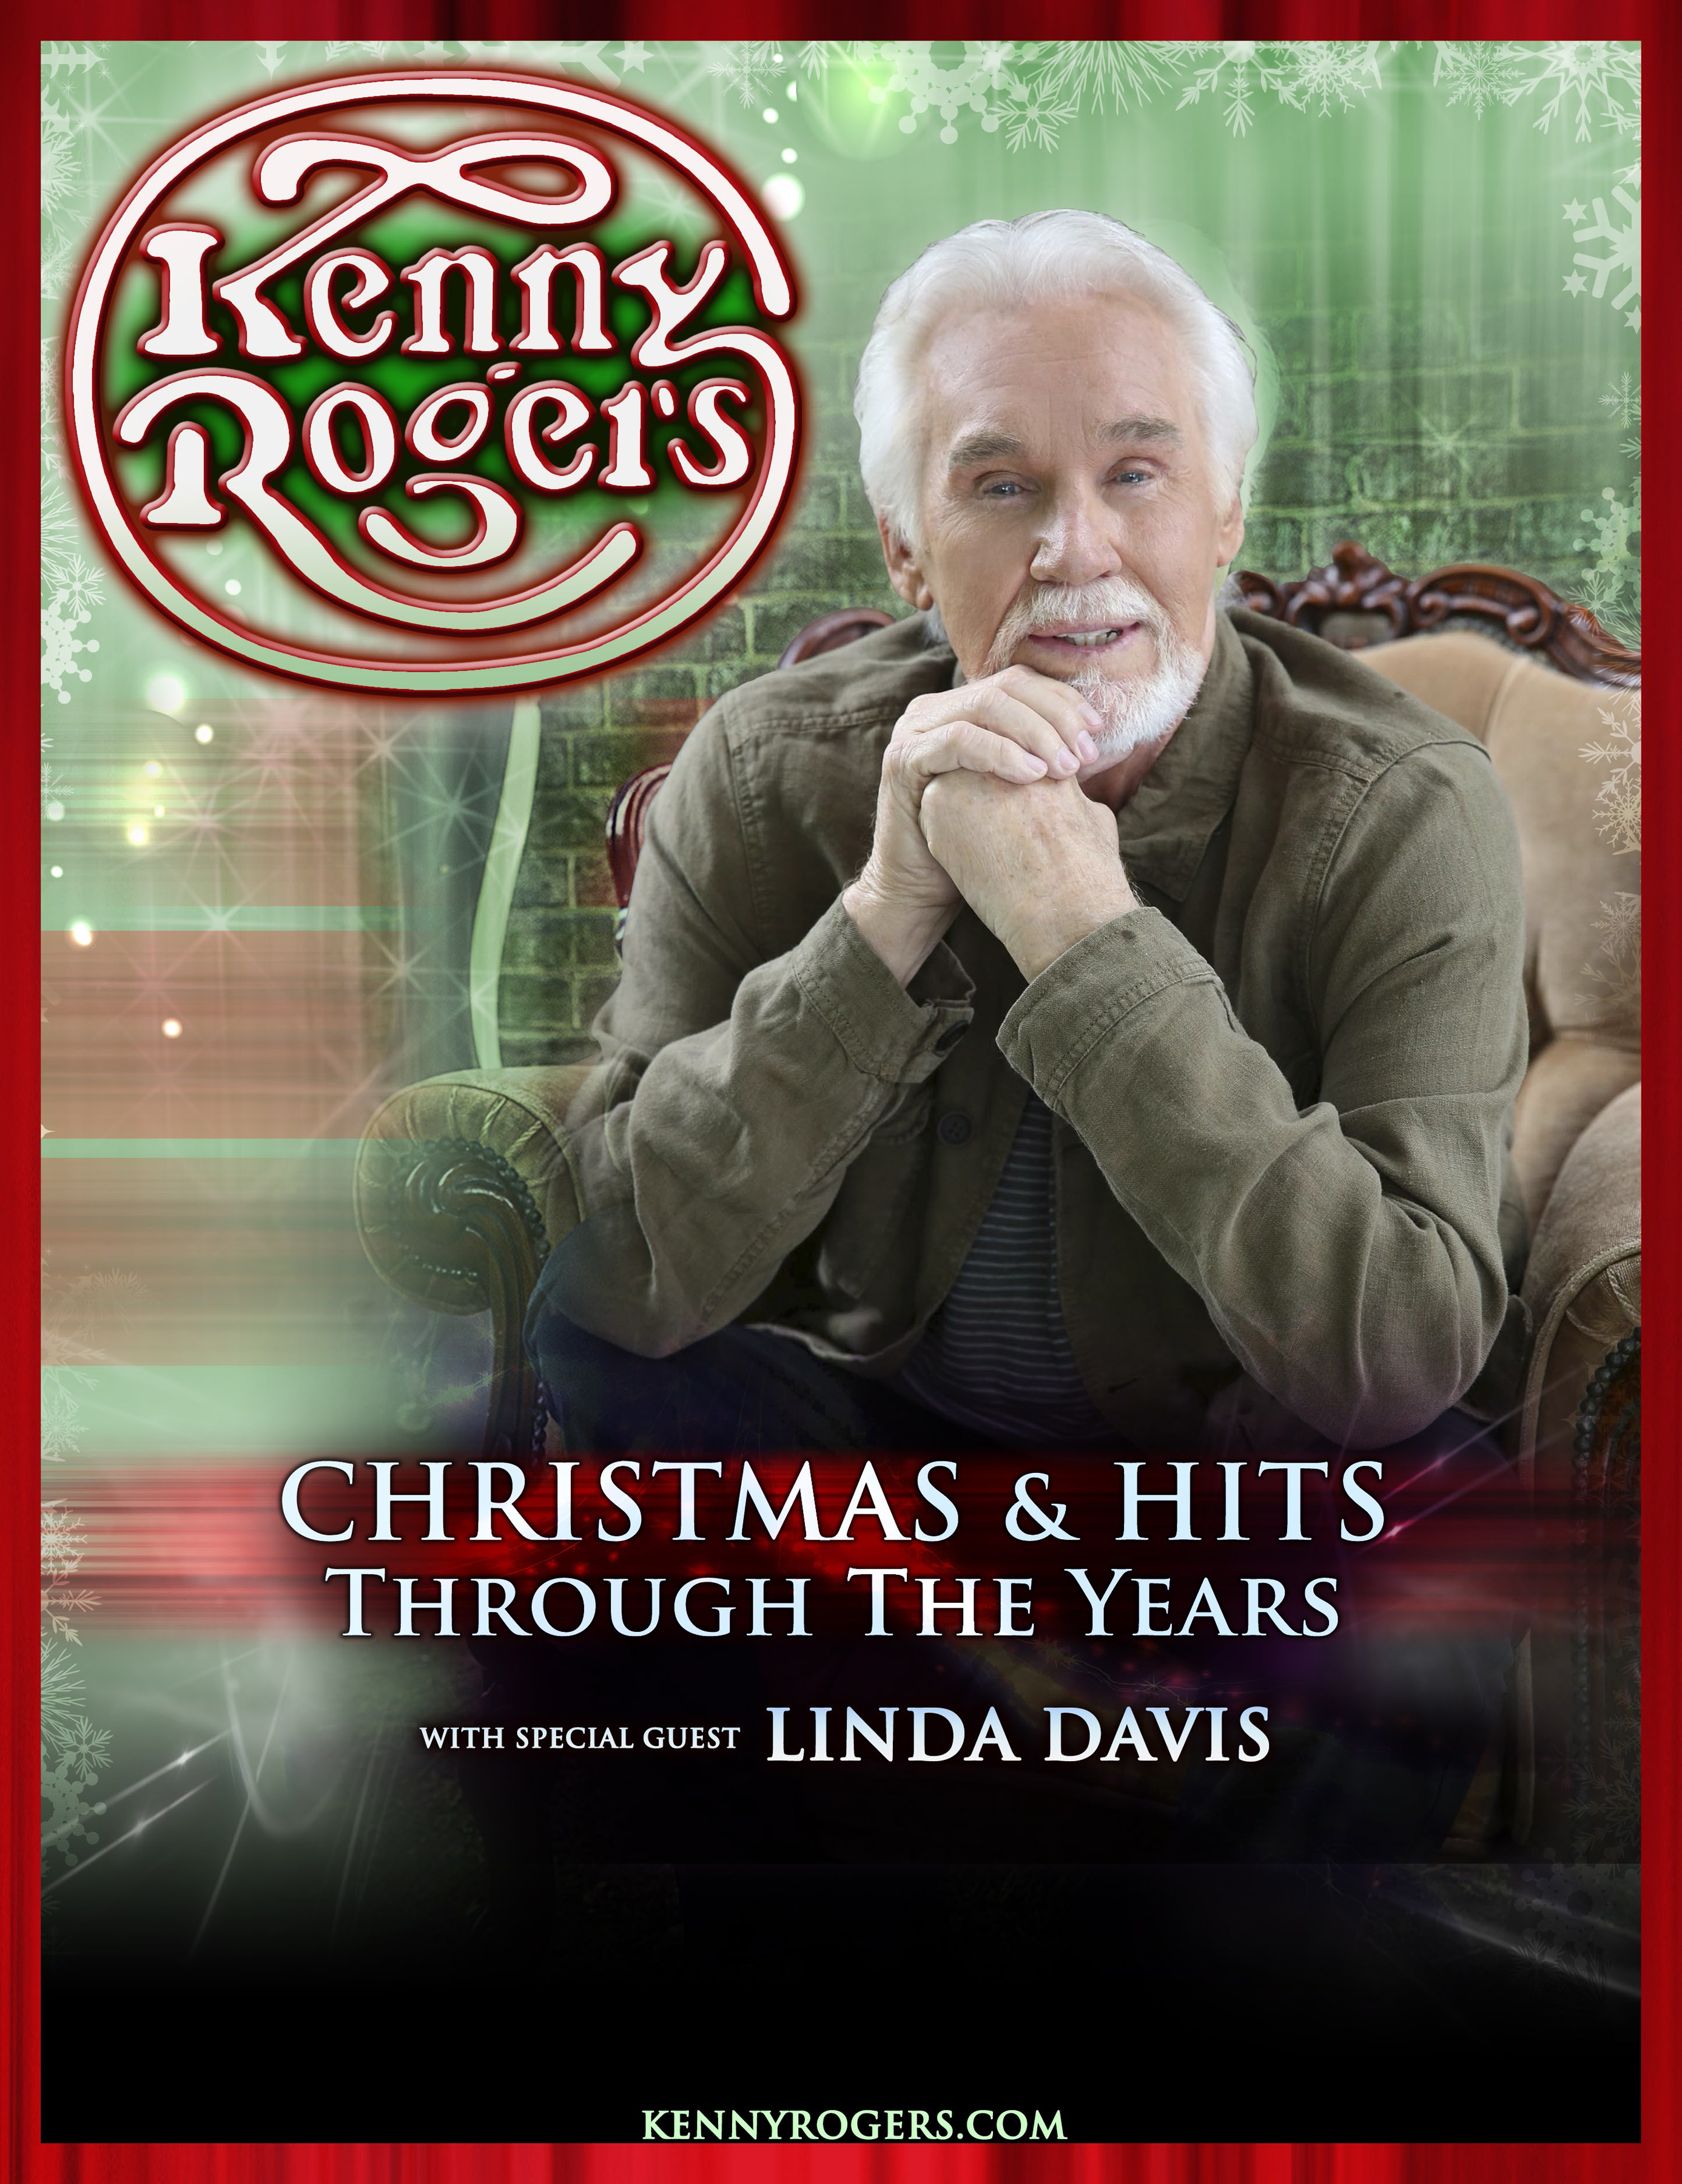 Kenny Rogers Continues Holiday Tradition With 2014 Christmas and ...